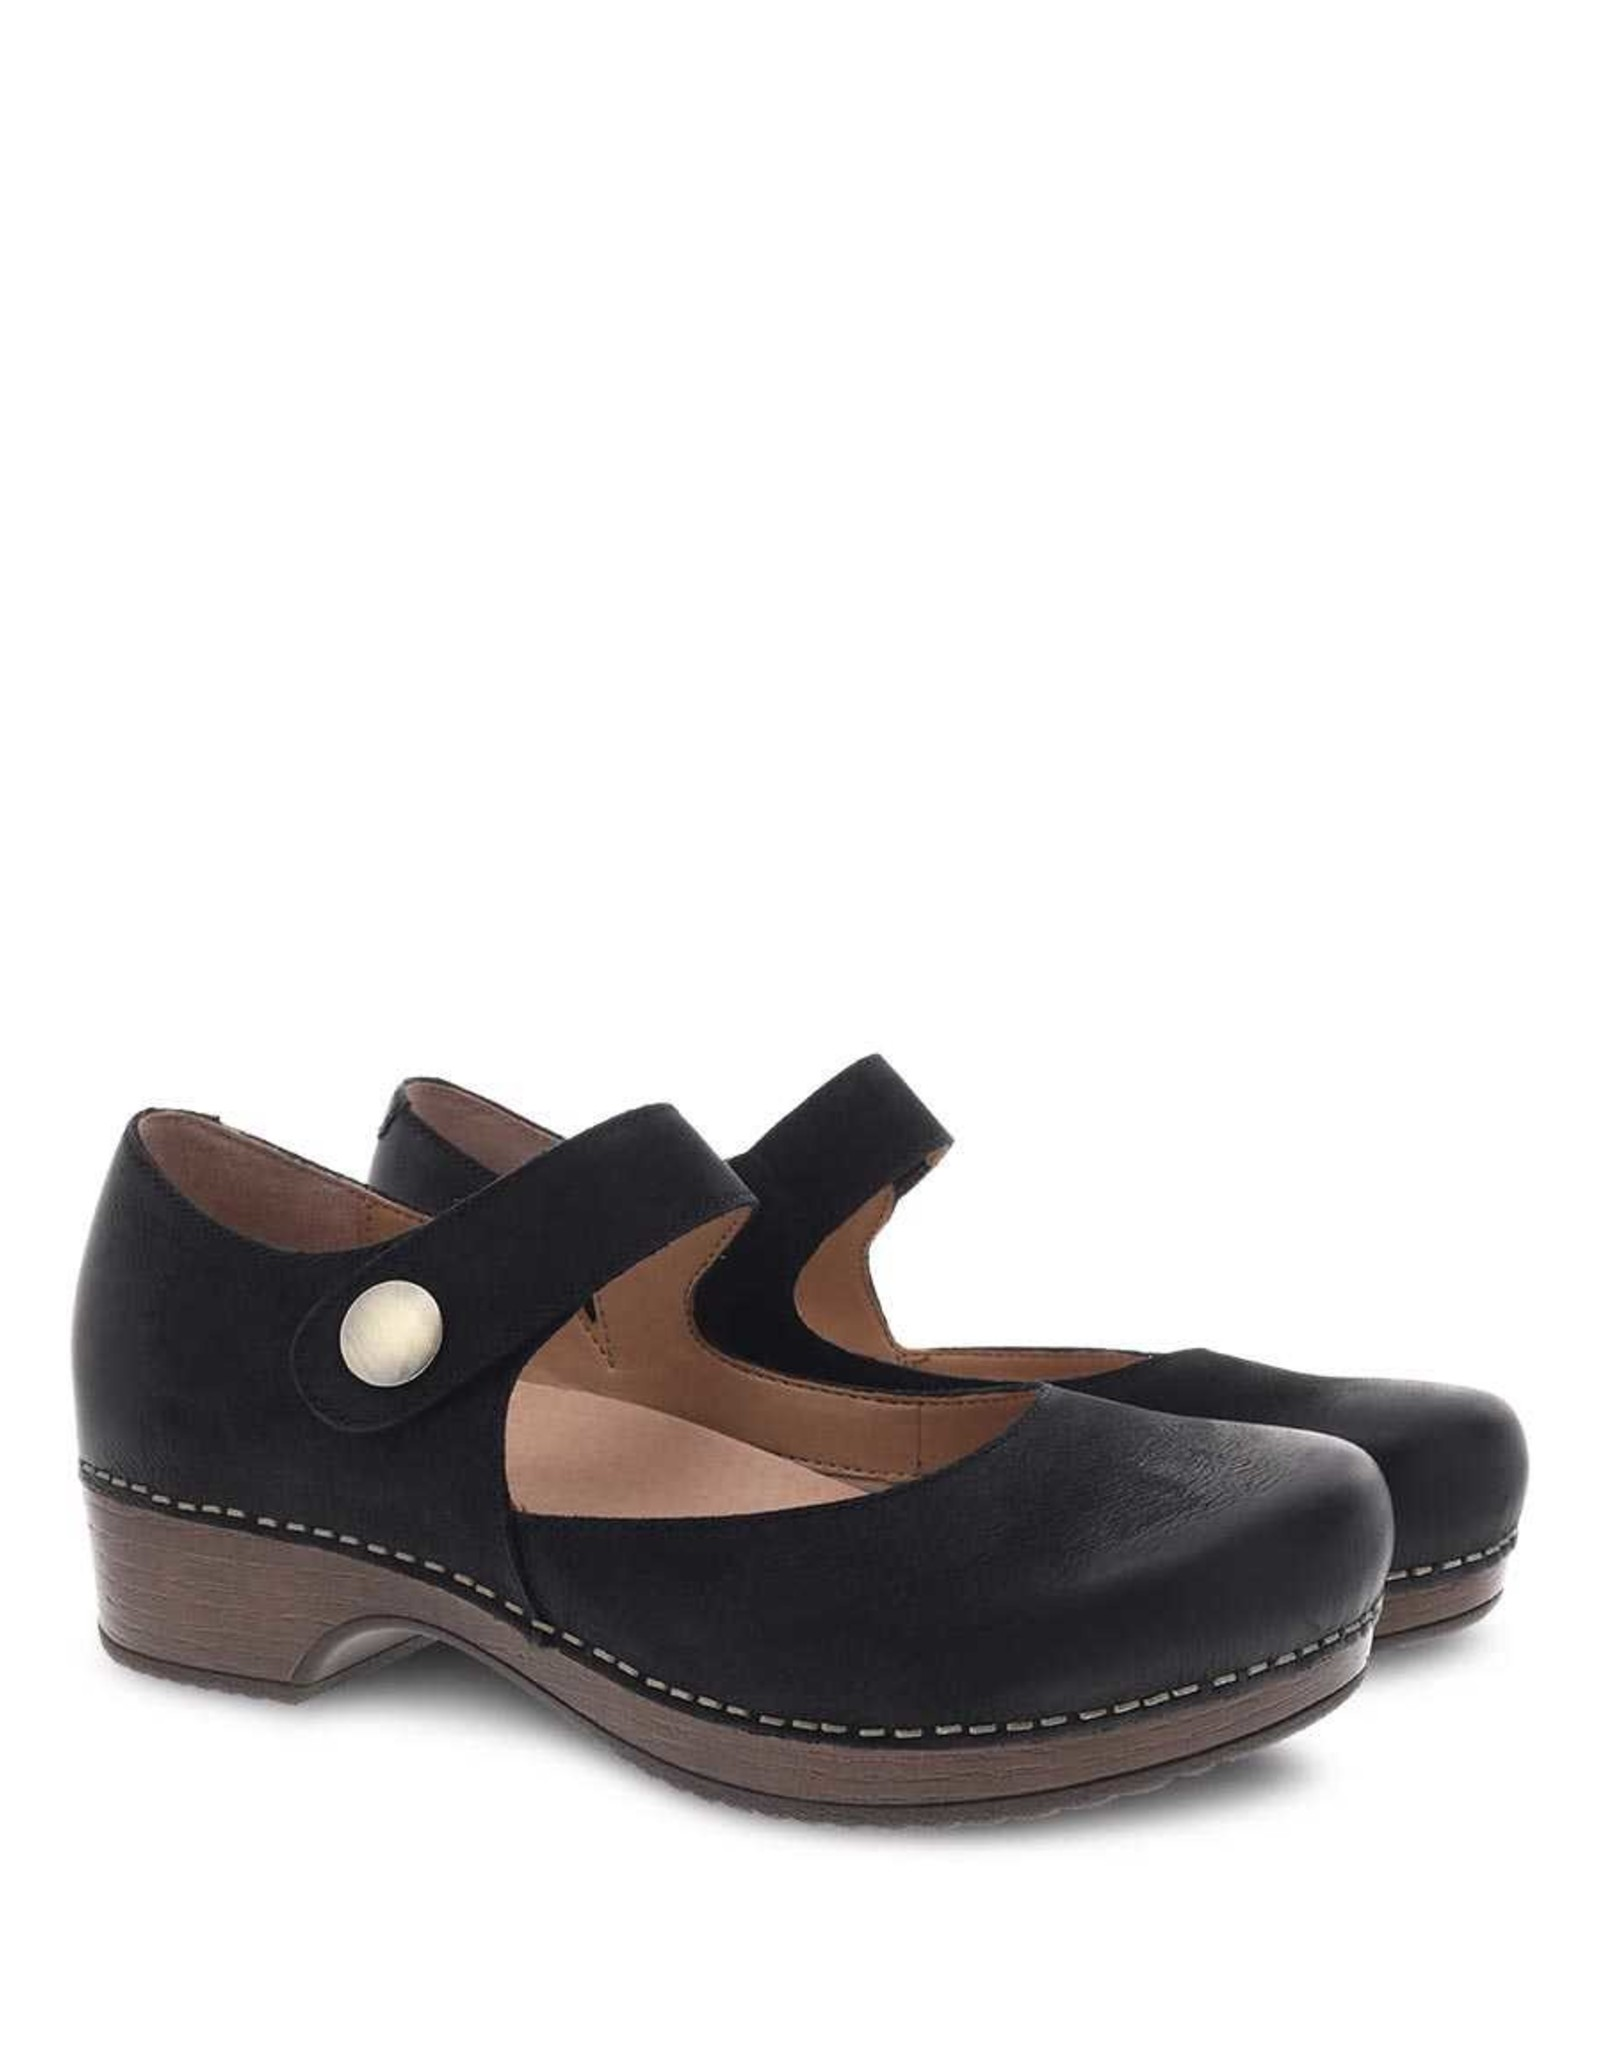 DANSKO DANSKO BEATRICE MARY JANE-BLACK